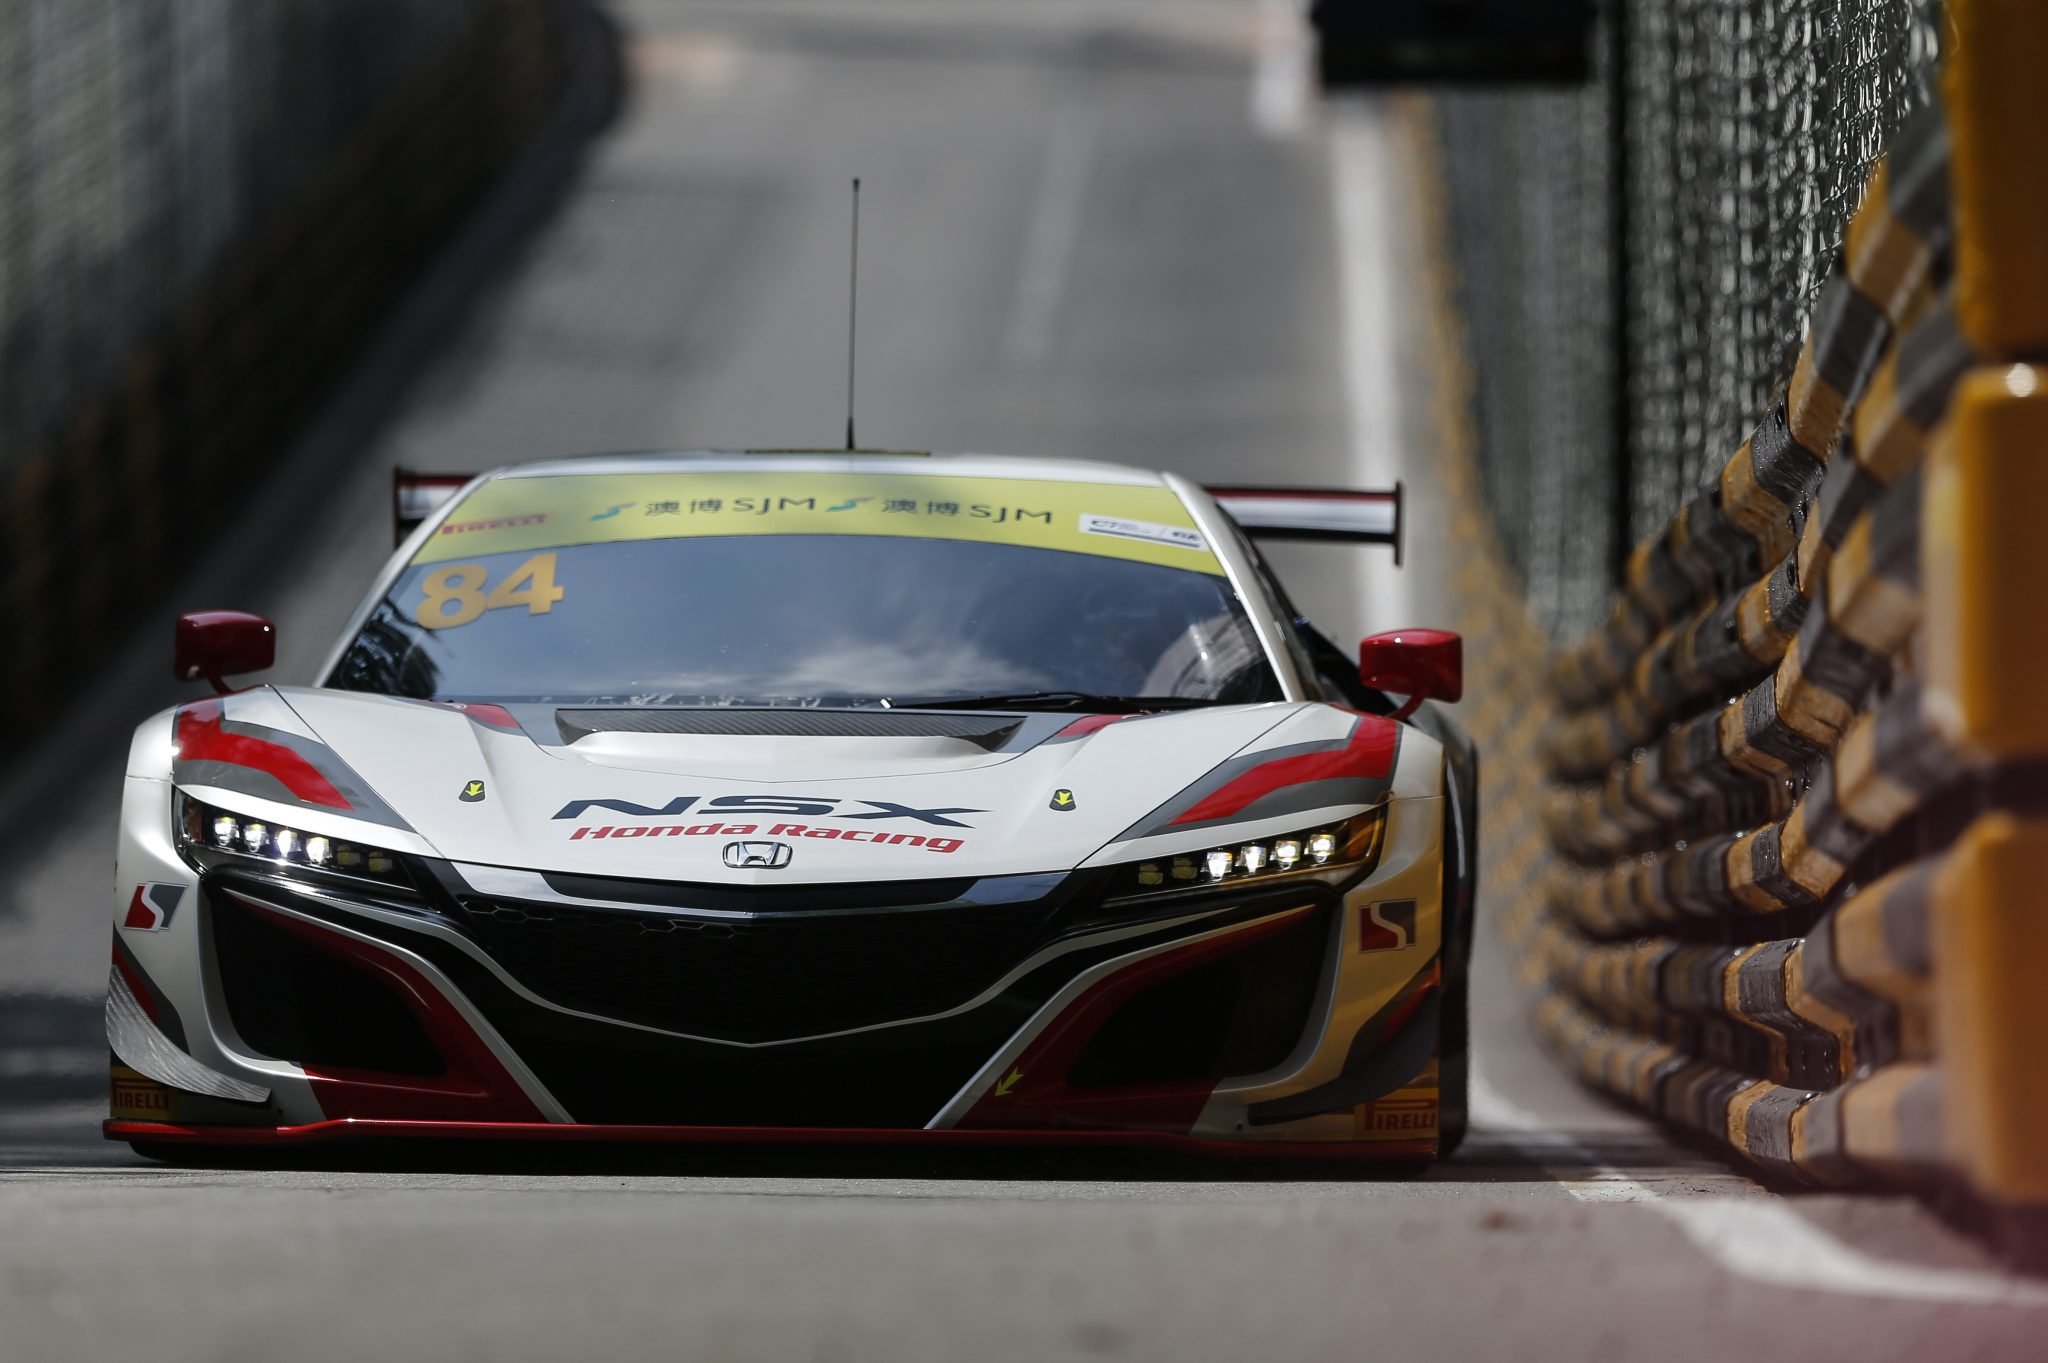 Honda NSX GT3 proves pace in FIA GT World Cup